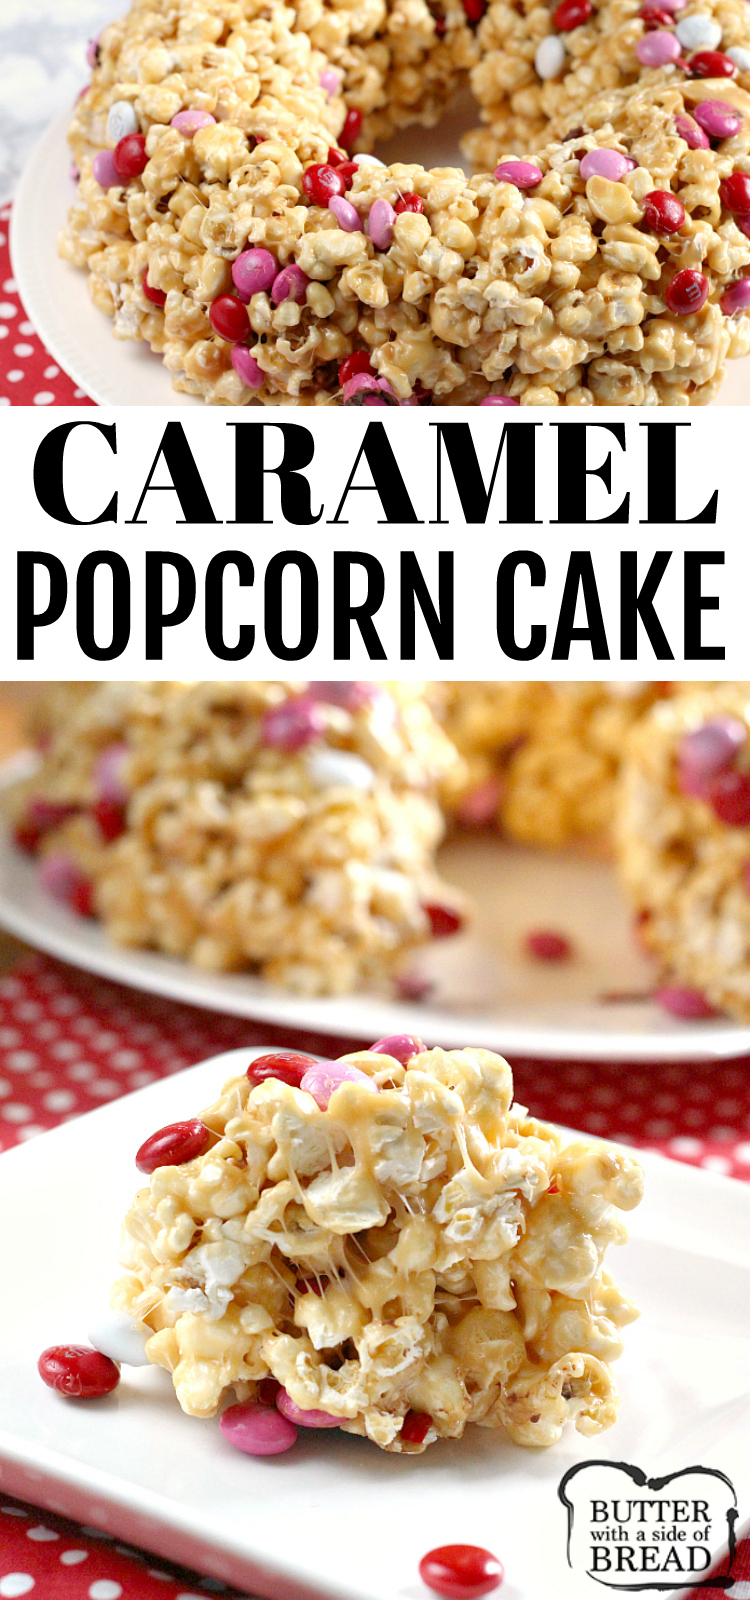 """Caramel Popcorn Cake is made with caramel, marshmallows and a few other basic ingredients for a quick and easy no-bake dessert!This """"cake"""" tastes like caramel popcorn but the caramel is a little bit softer and not quite as sticky so it is much easier to eat without making a huge mess!"""